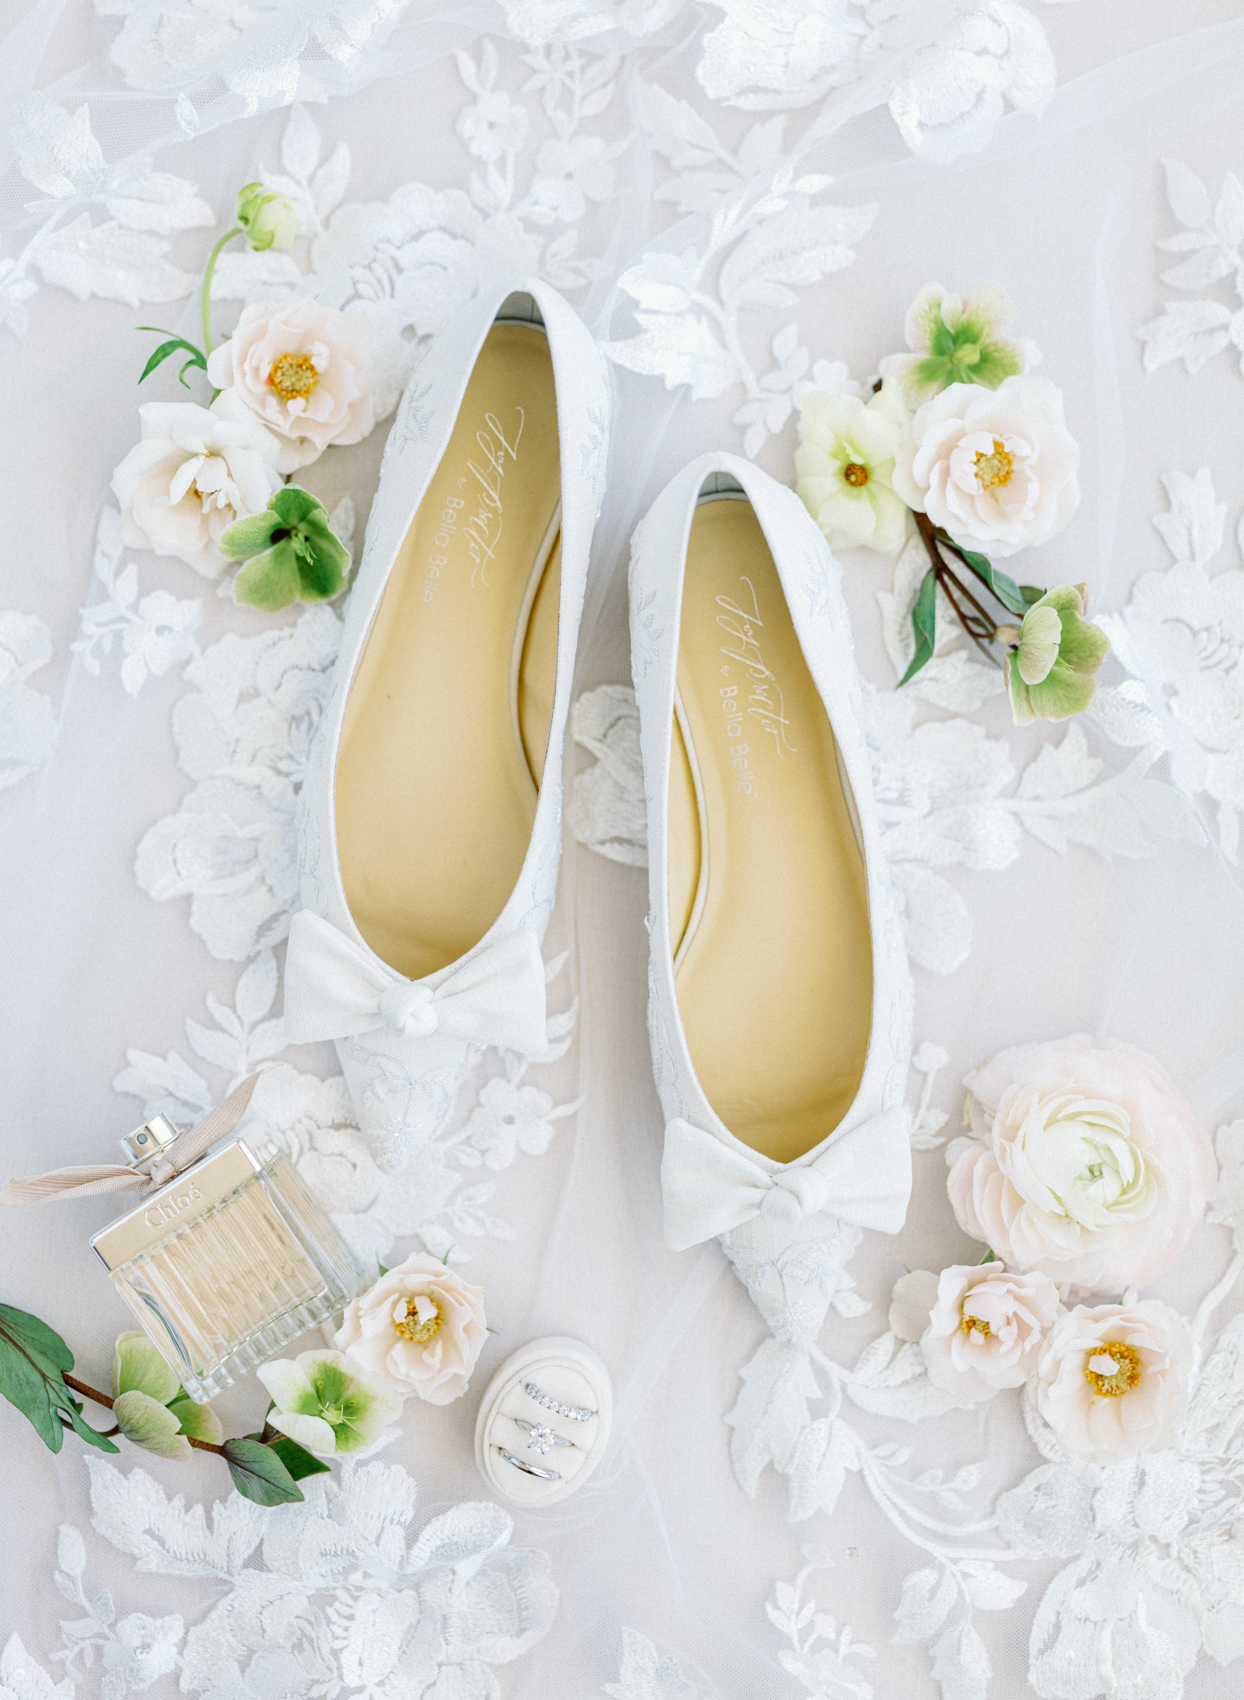 bride's white wedding shoes and accessories